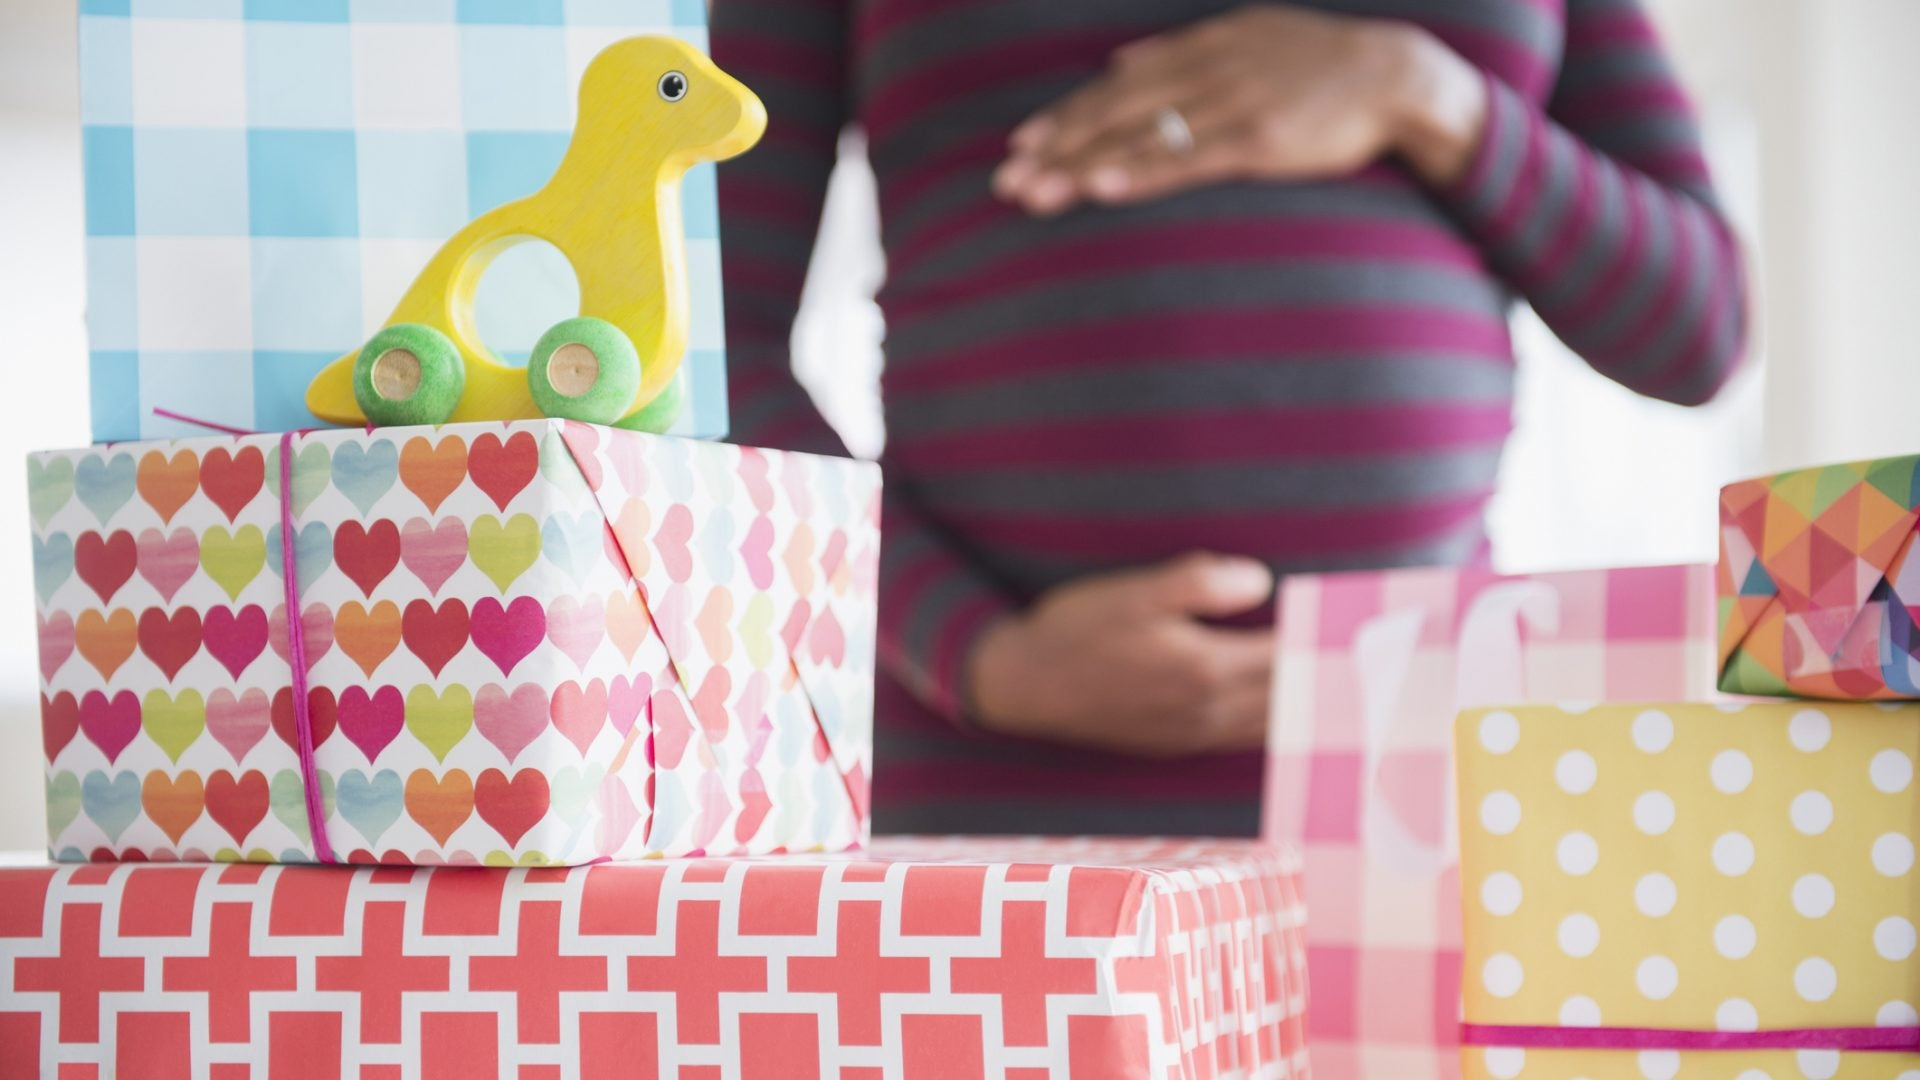 Friend's Baby Shower Got Canceled? Here Are A Few Ways To Celebrate Her